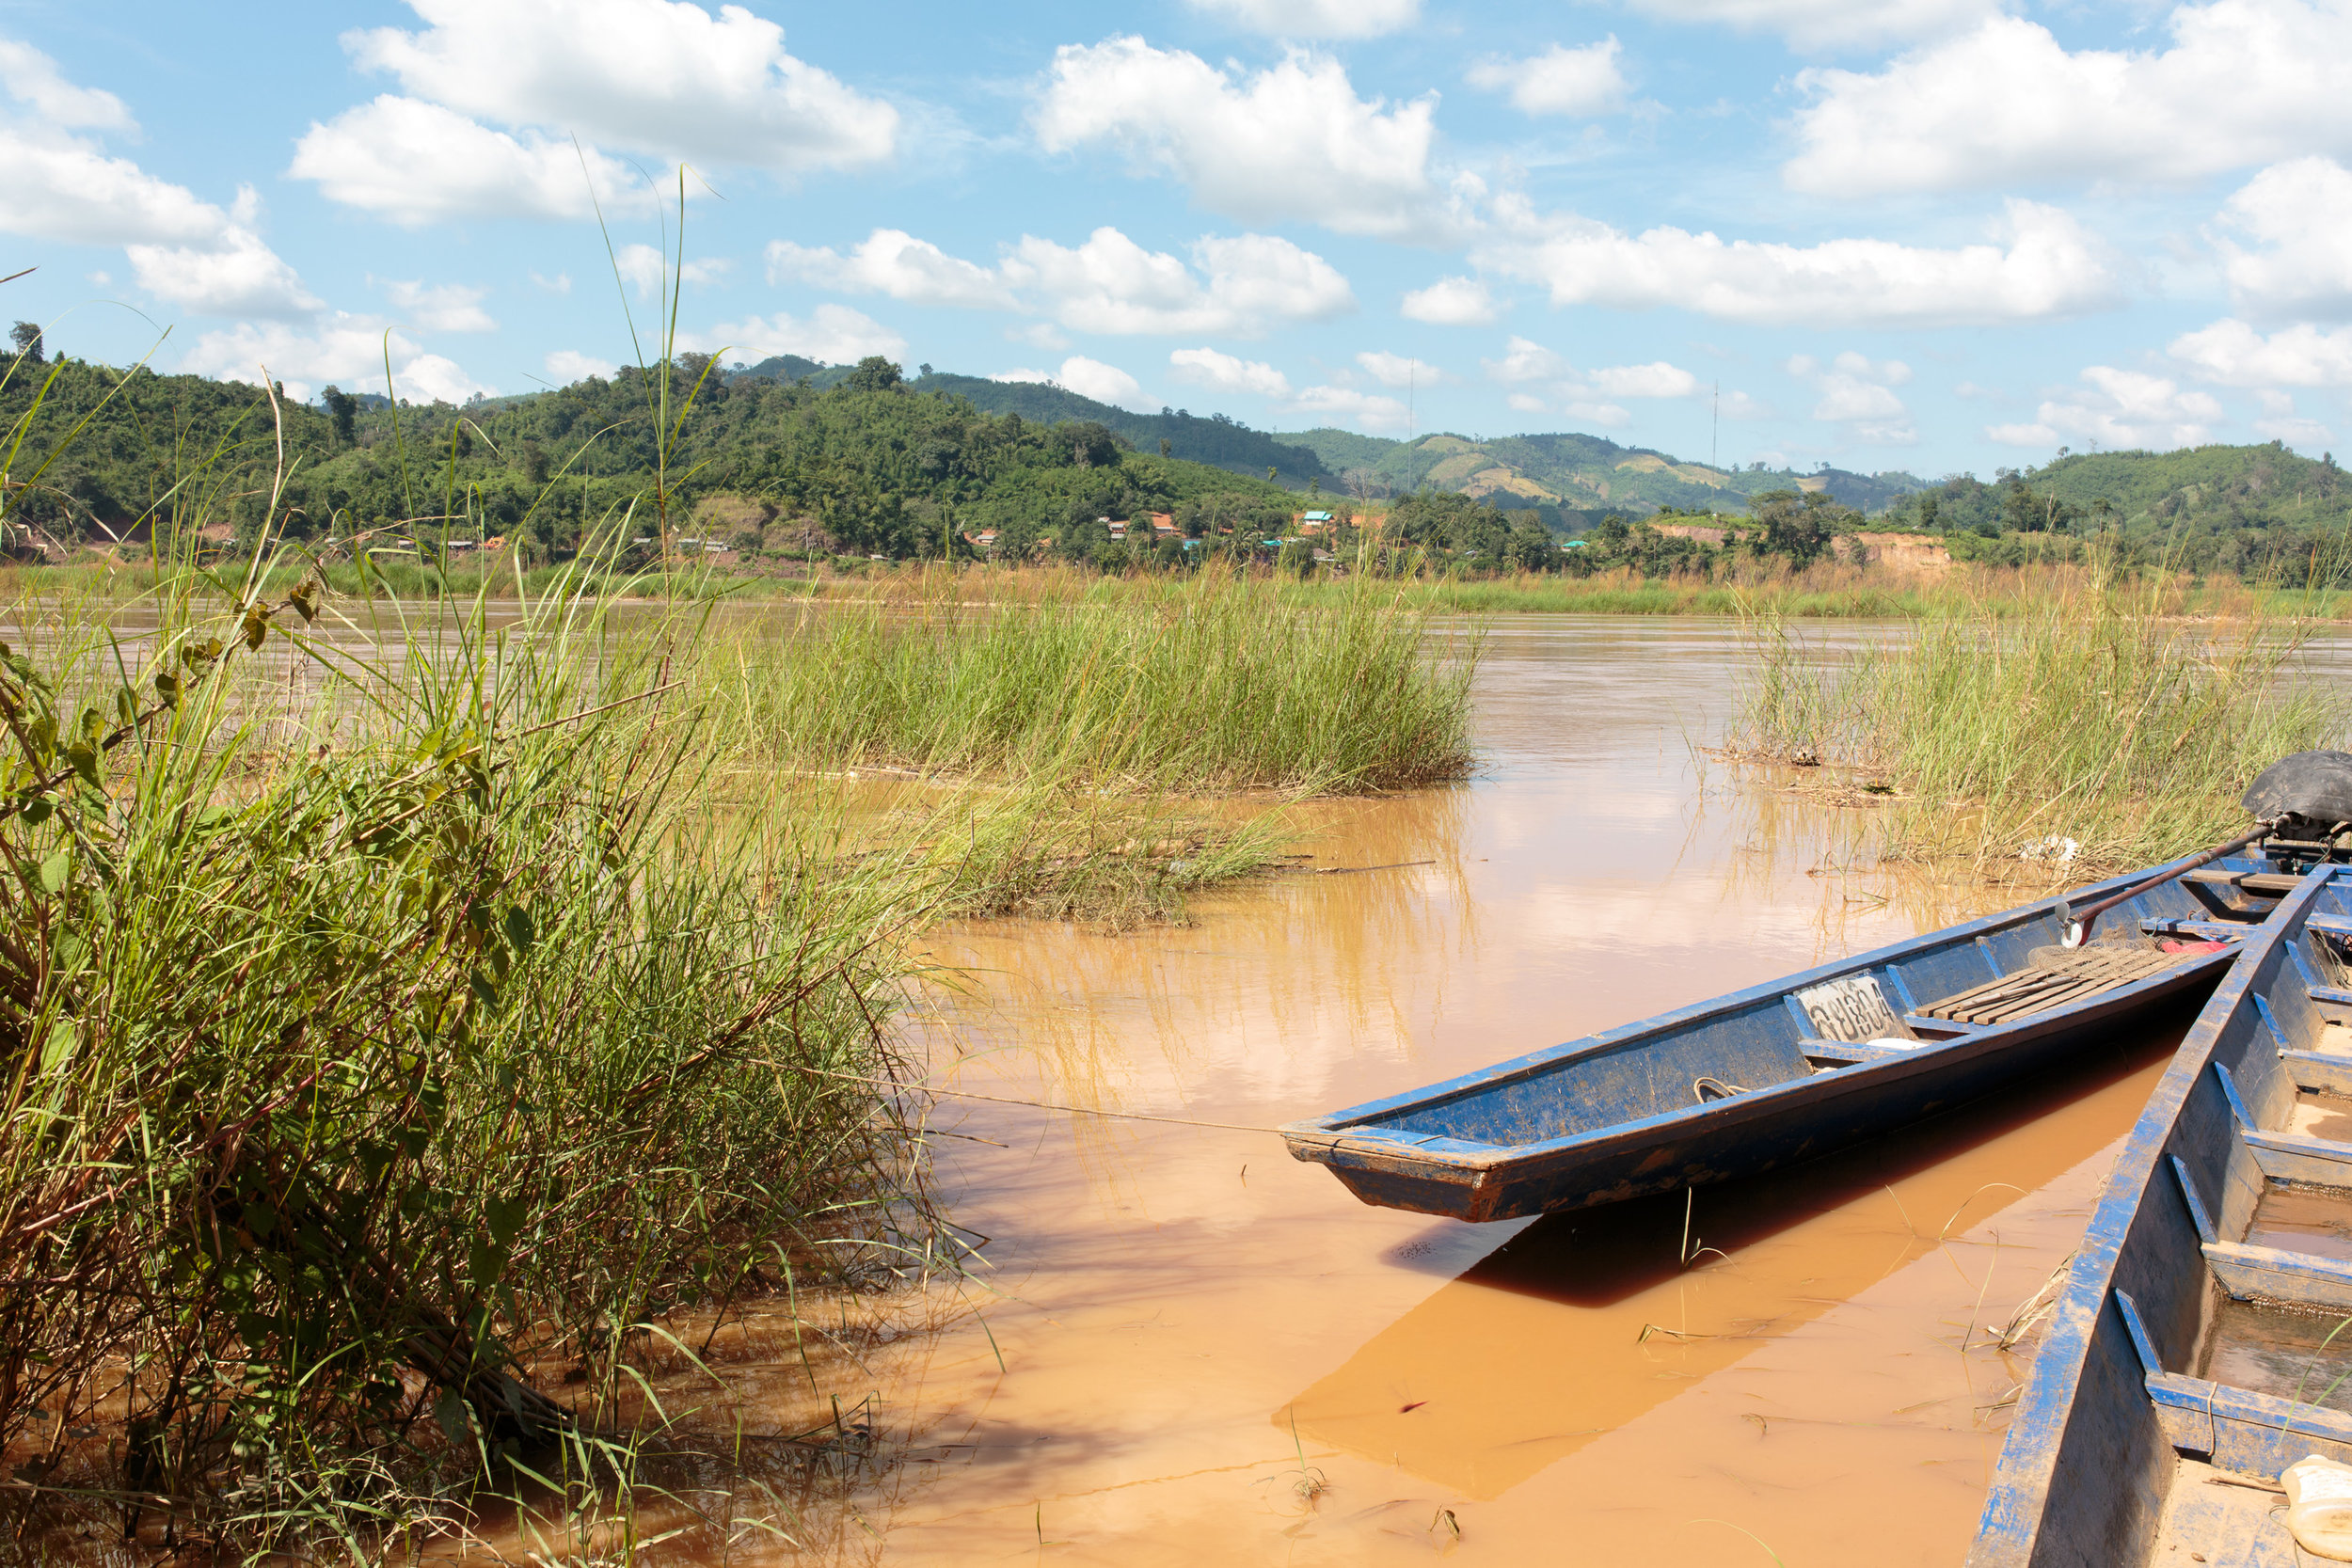 The Mekong River flowing through Loei Province.